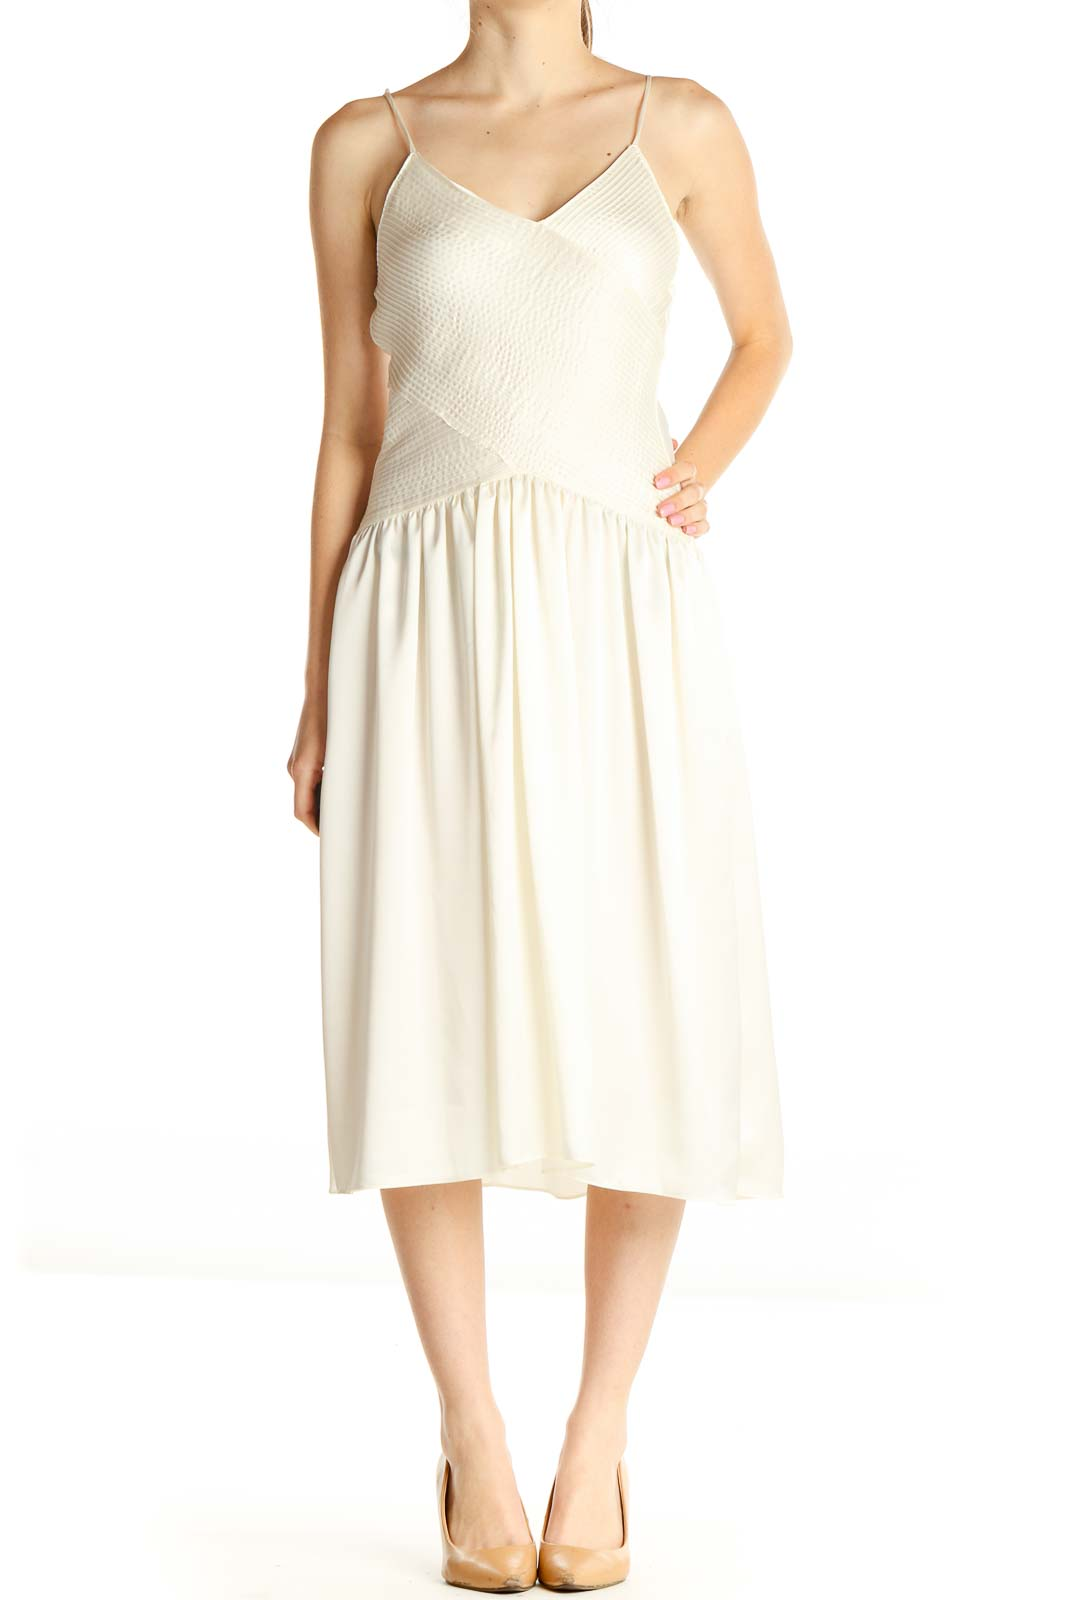 White Solid Classic Dress Front